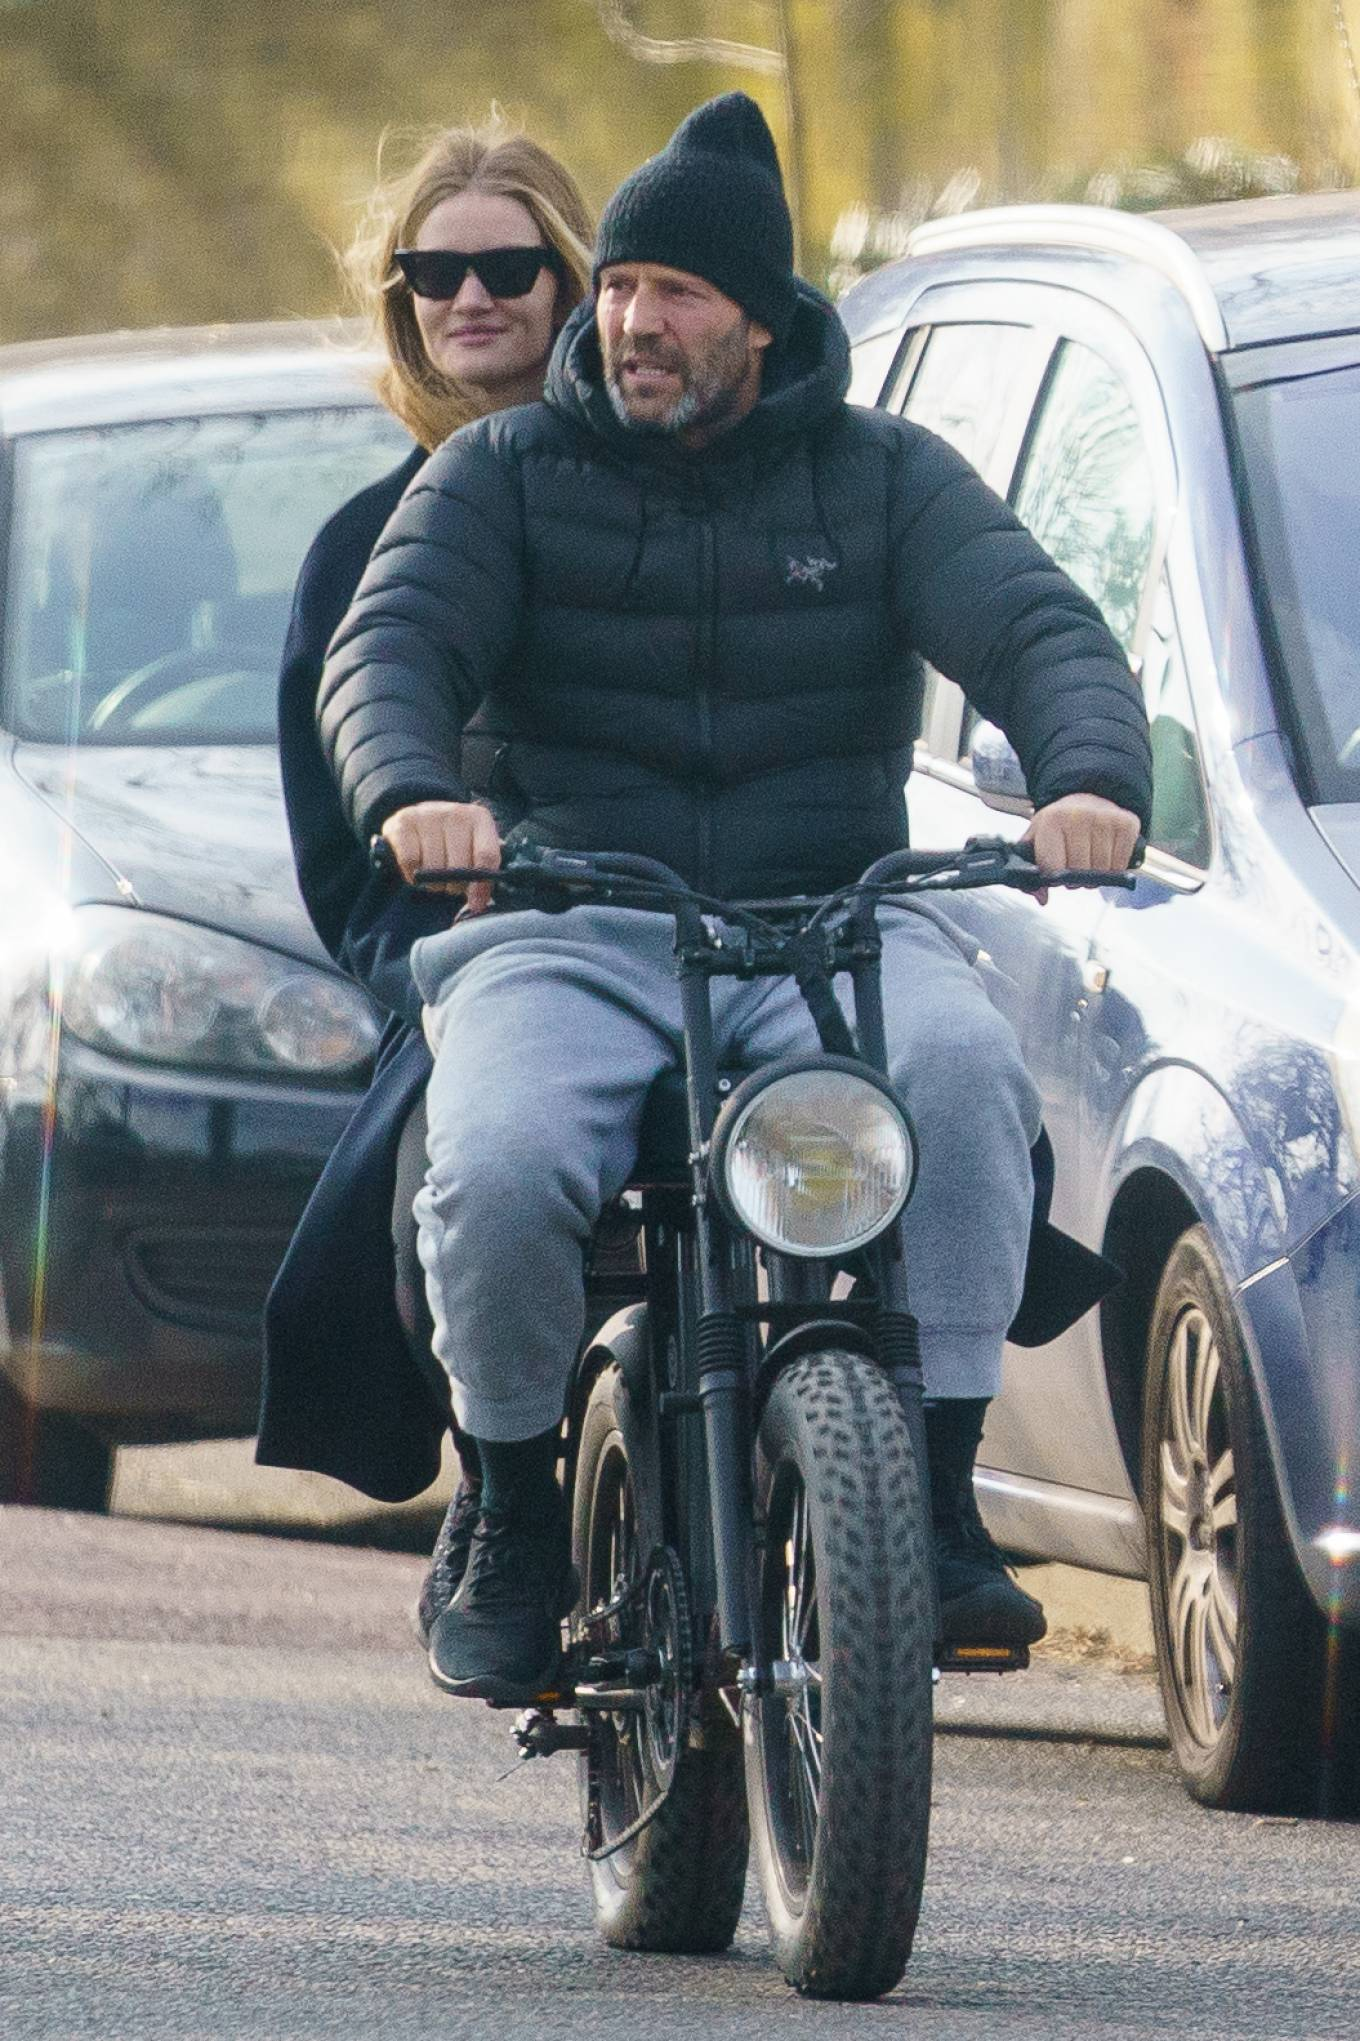 Rosie Huntington-Whiteley 2021 : Rosie Huntington-Whiteley – With Jason Statham ride electric bike in London-14